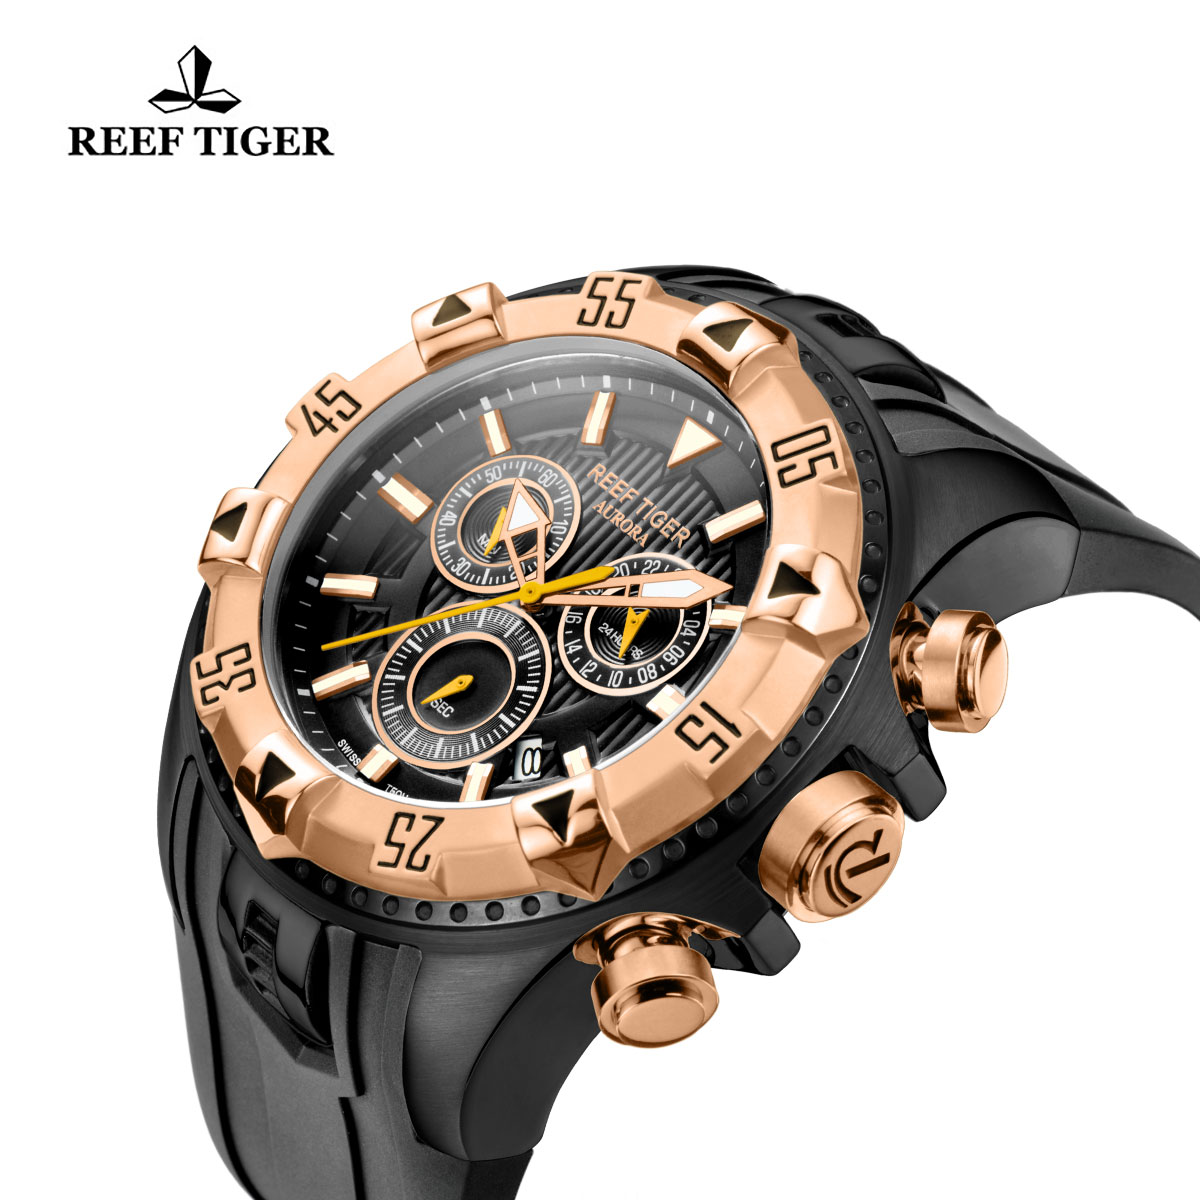 Reef Tiger Hercules Sport Watches Chronograph PVD Case Rose Gold Bezel Black Dial Watch RGA303-PBB